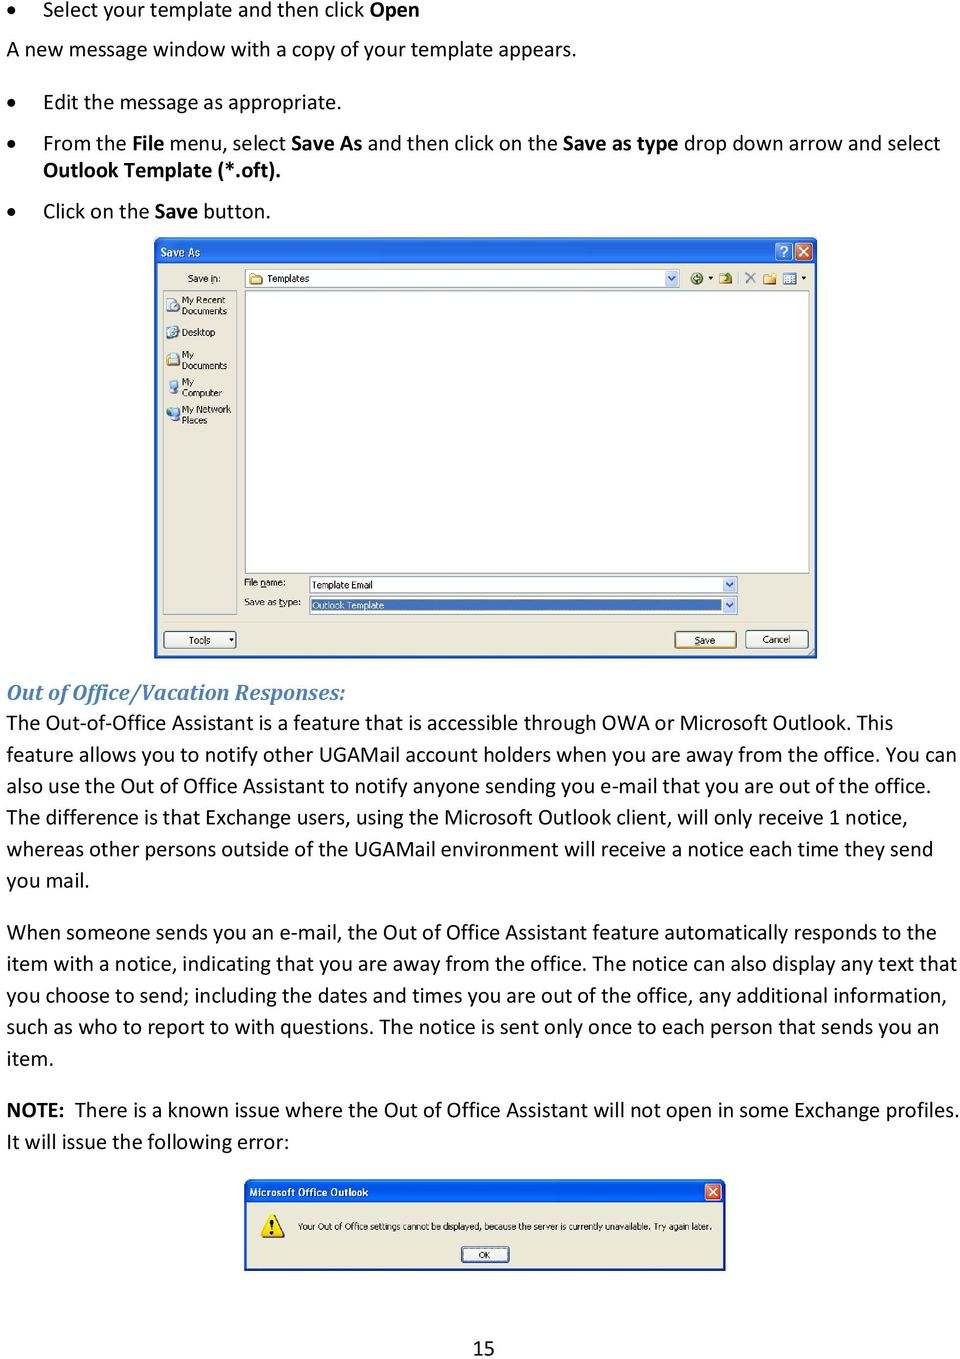 Out of Office/Vacation Responses: The Out-of-Office Assistant is a feature that is accessible through OWA or Microsoft Outlook.